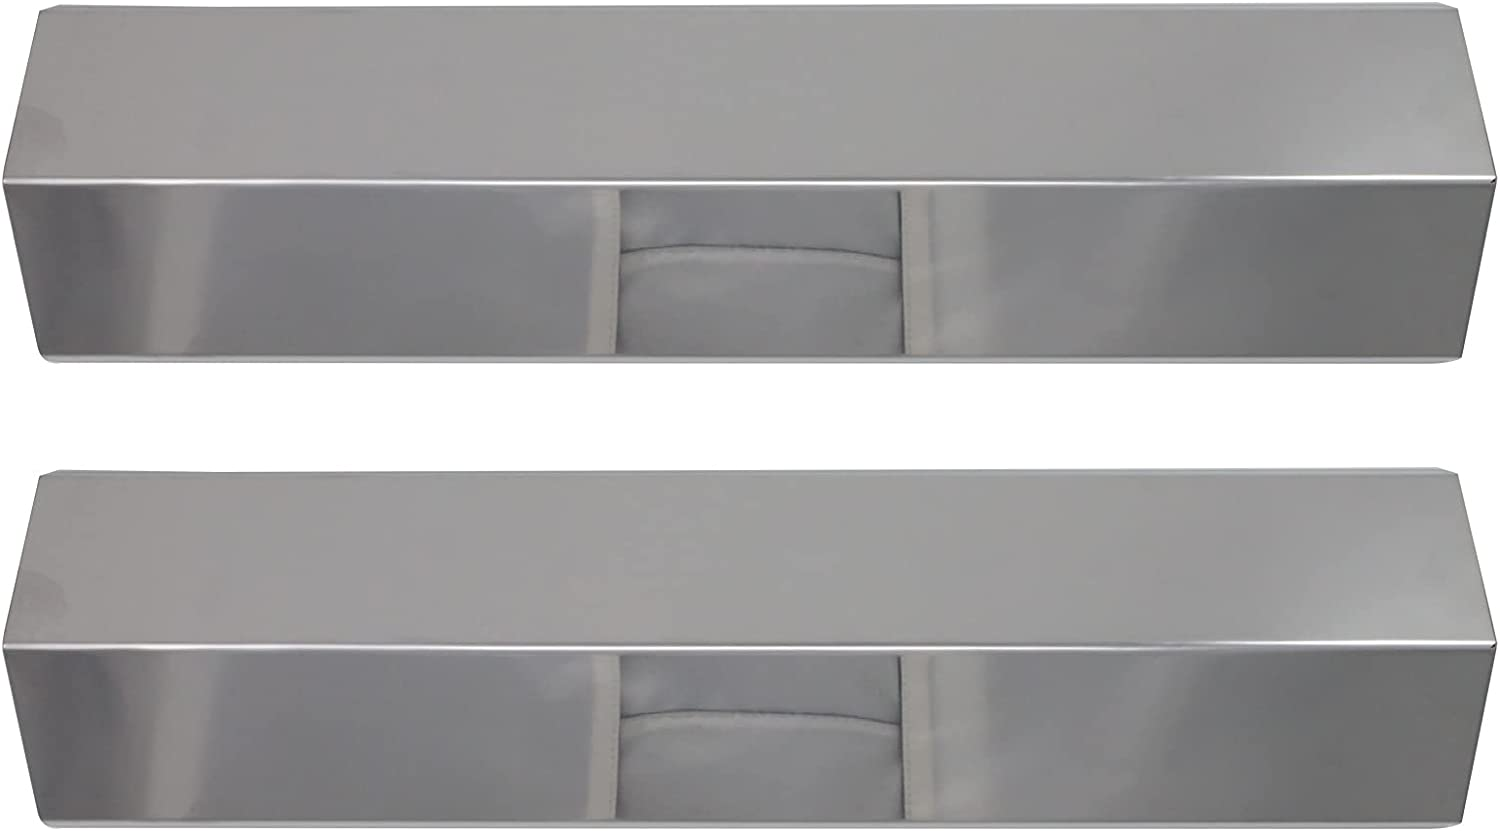 2-Pack Sales Jacksonville Mall of SALE items from new works BBQ Grill Heat Shield Plate for Un Tent Parts Replacement